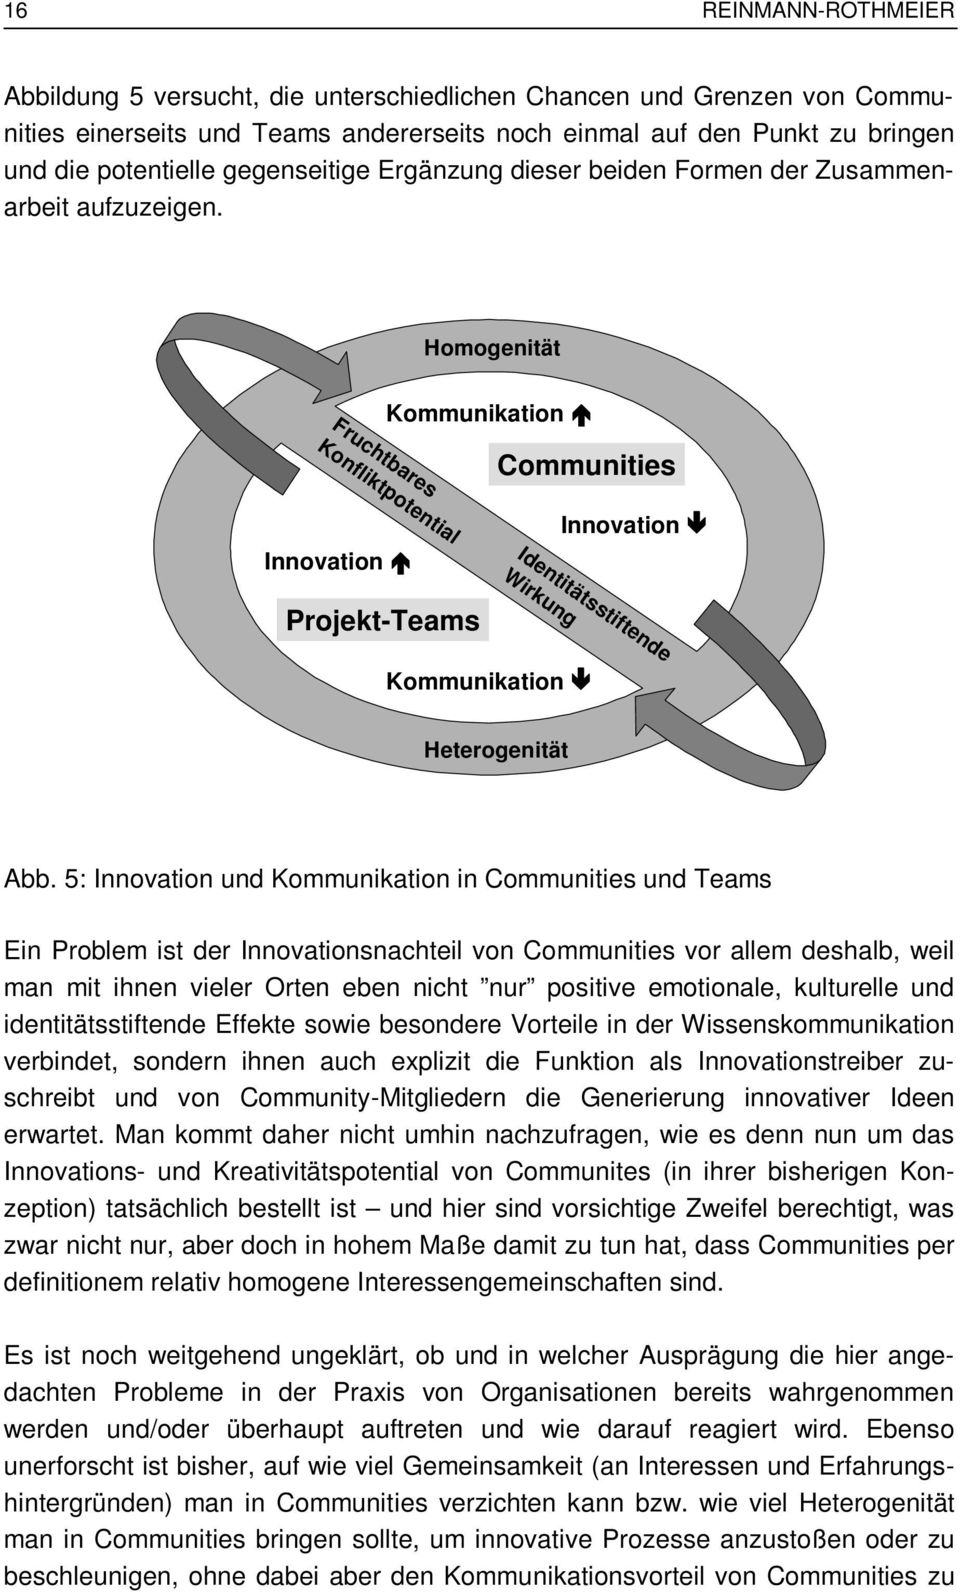 Homogenität Fruchtbares Konfliktpotential Kommunikation Communities Innovation Innovation Projekt-Teams Identitätsstiftende Wirkung Kommunikation Heterogenität Abb.